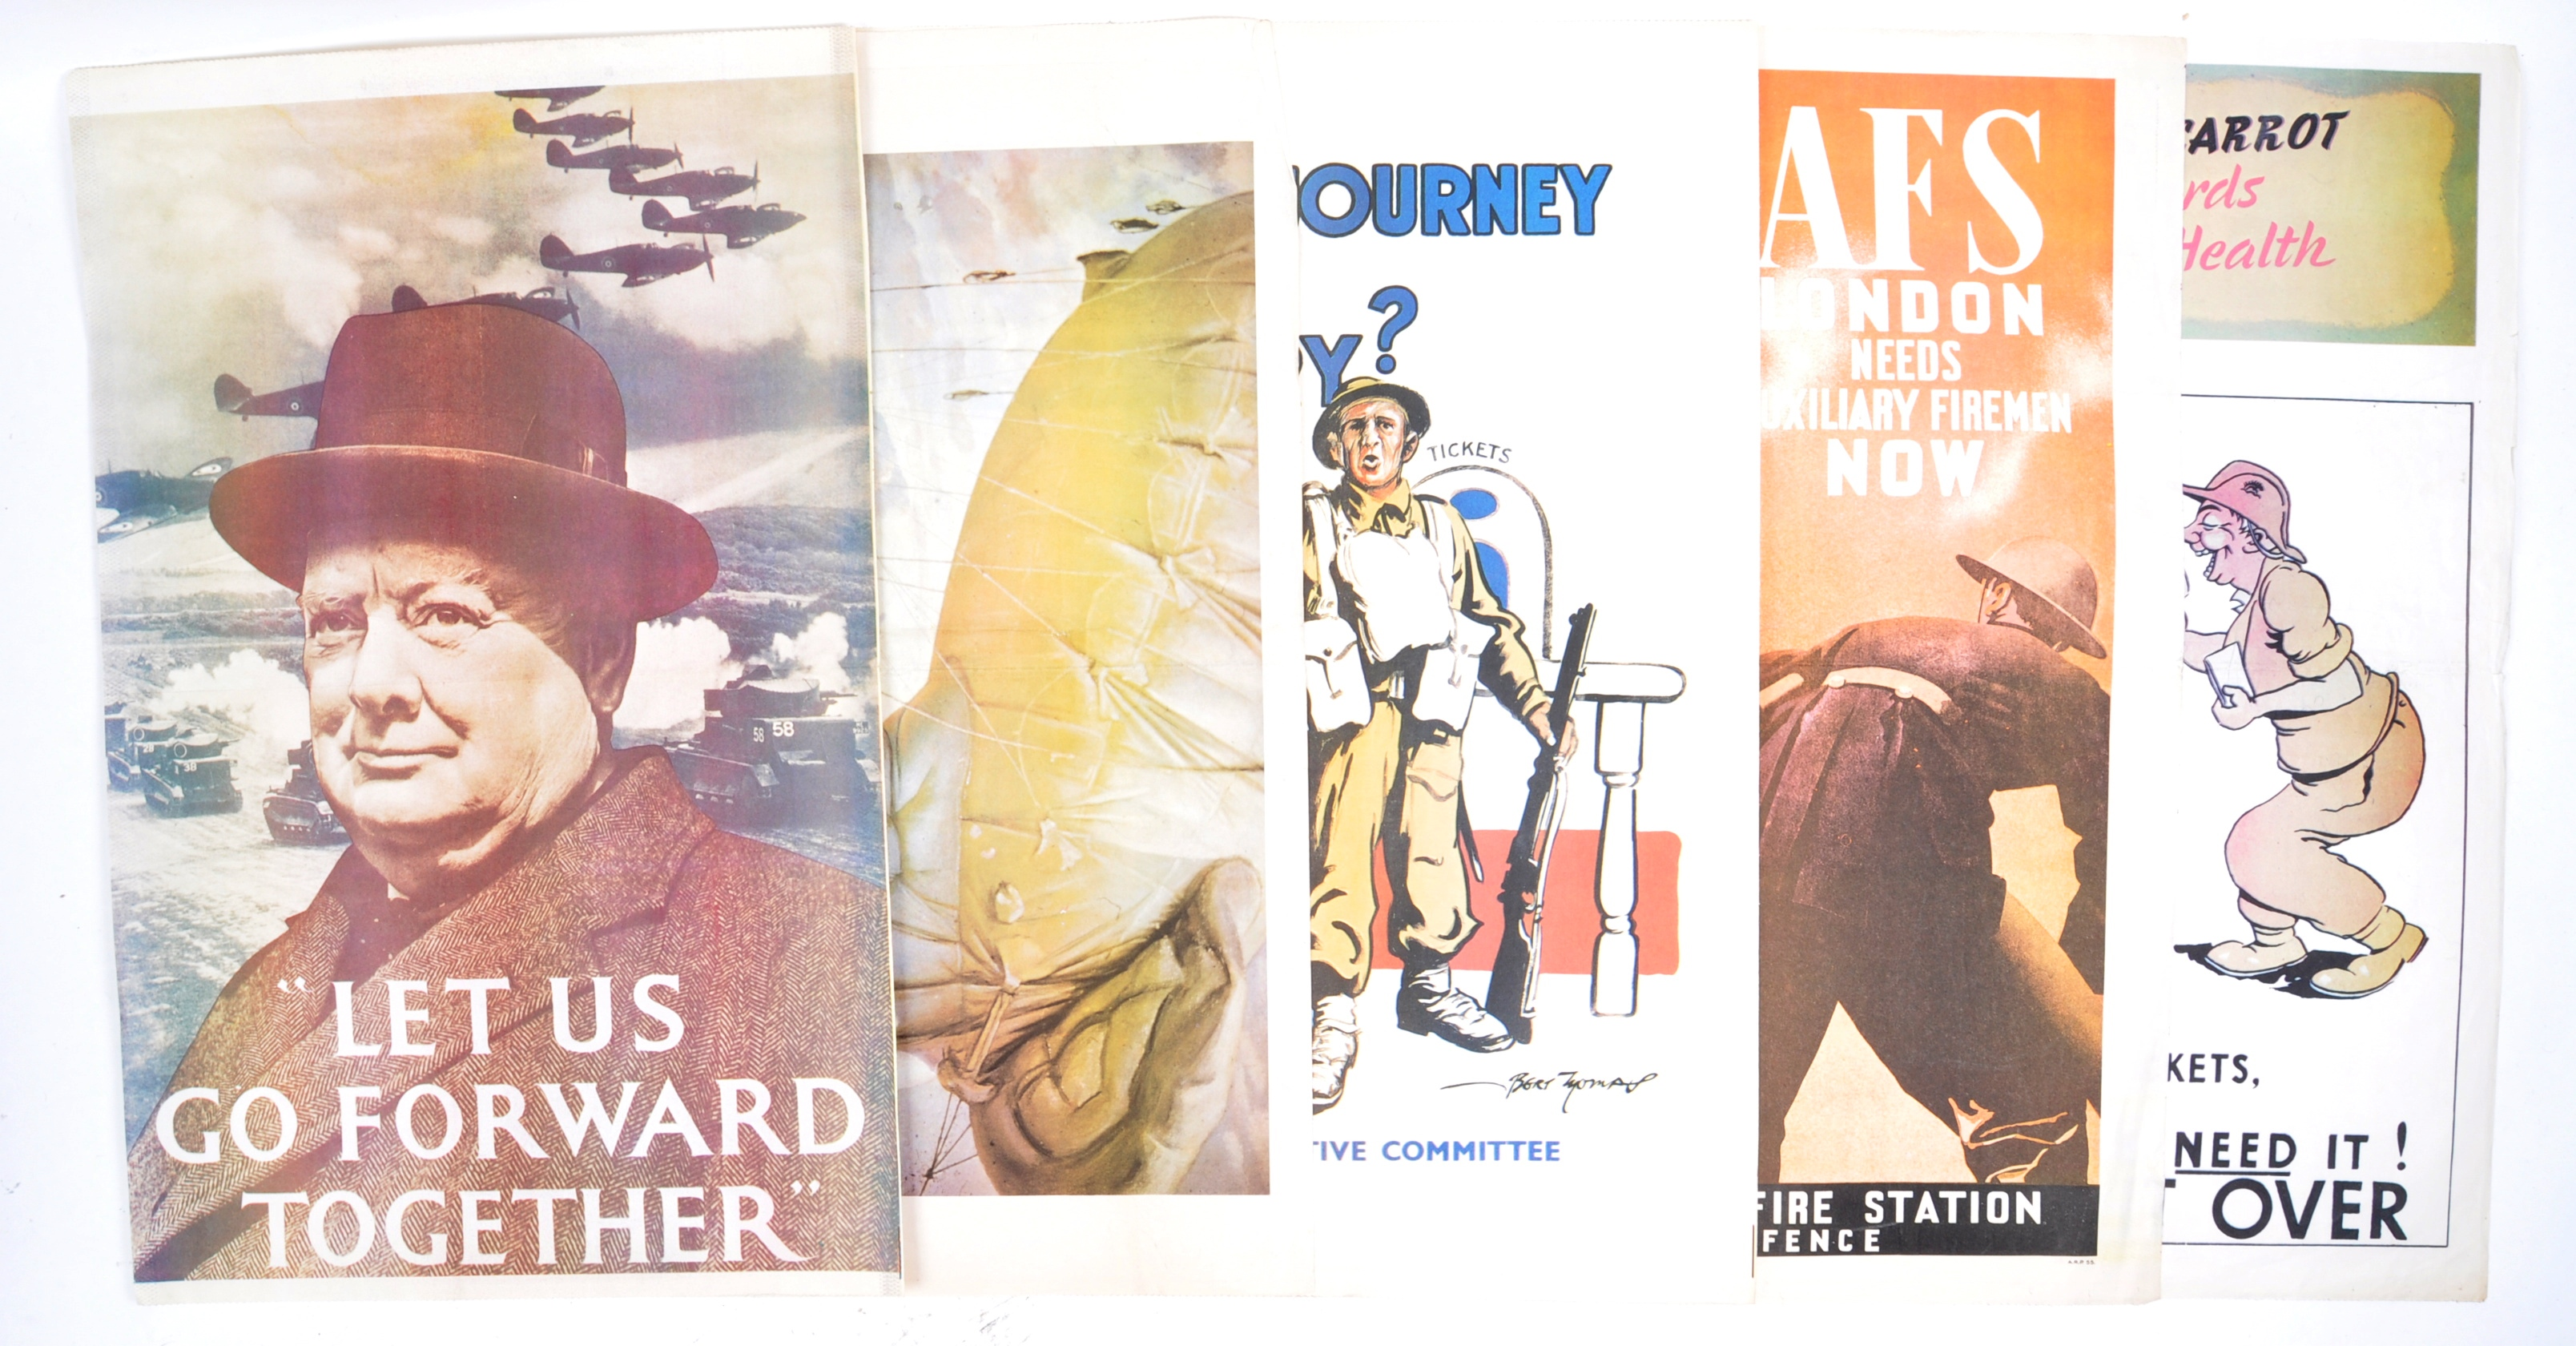 WWII SECOND WORLD WAR POSTERS - CHURCHILL, AFS, HOME FRONT ETC